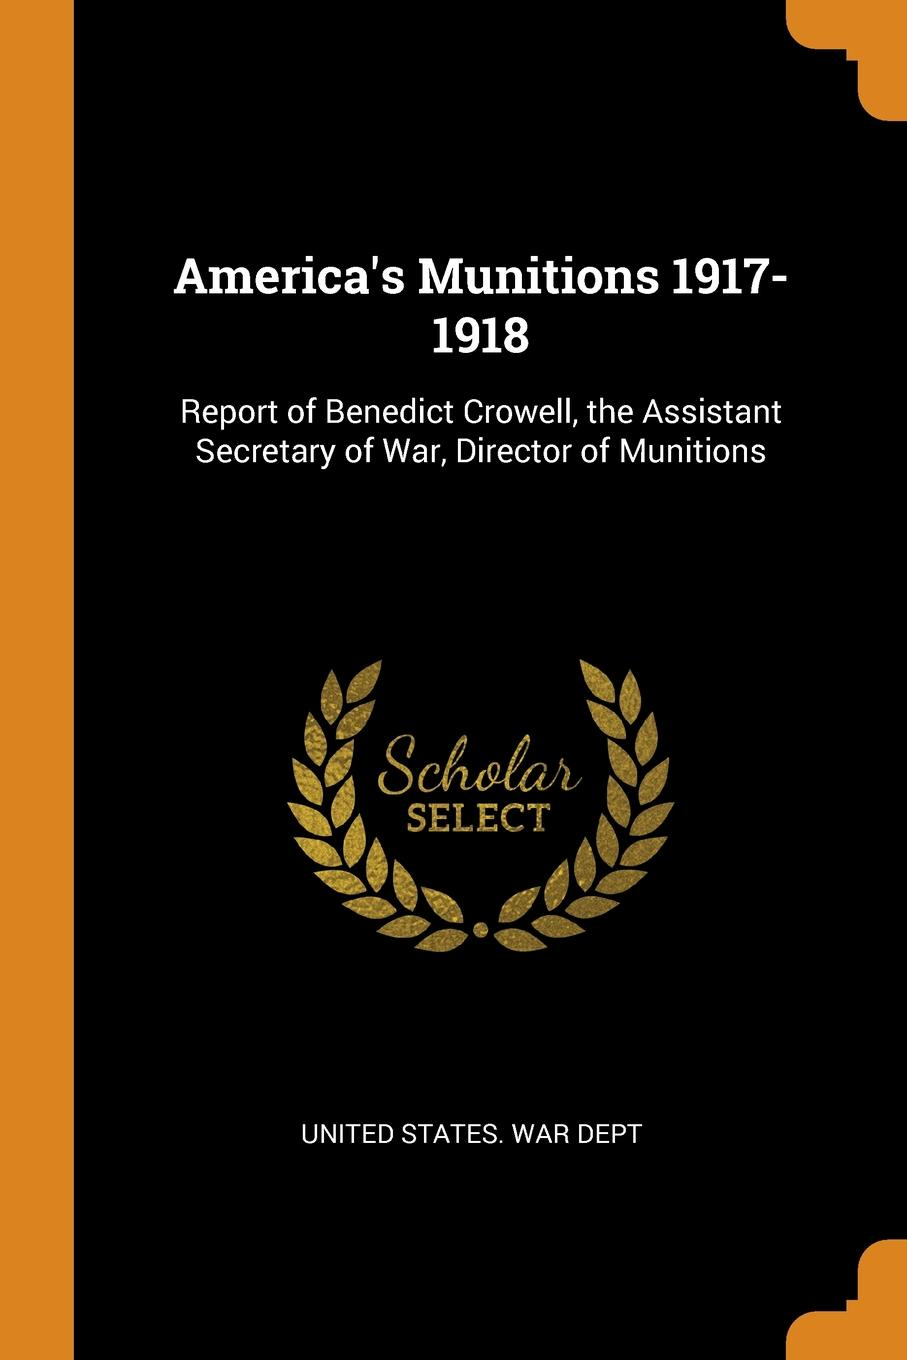 America.s Munitions 1917-1918. Report of Benedict Crowell, the Assistant Secretary of War, Director of Munitions